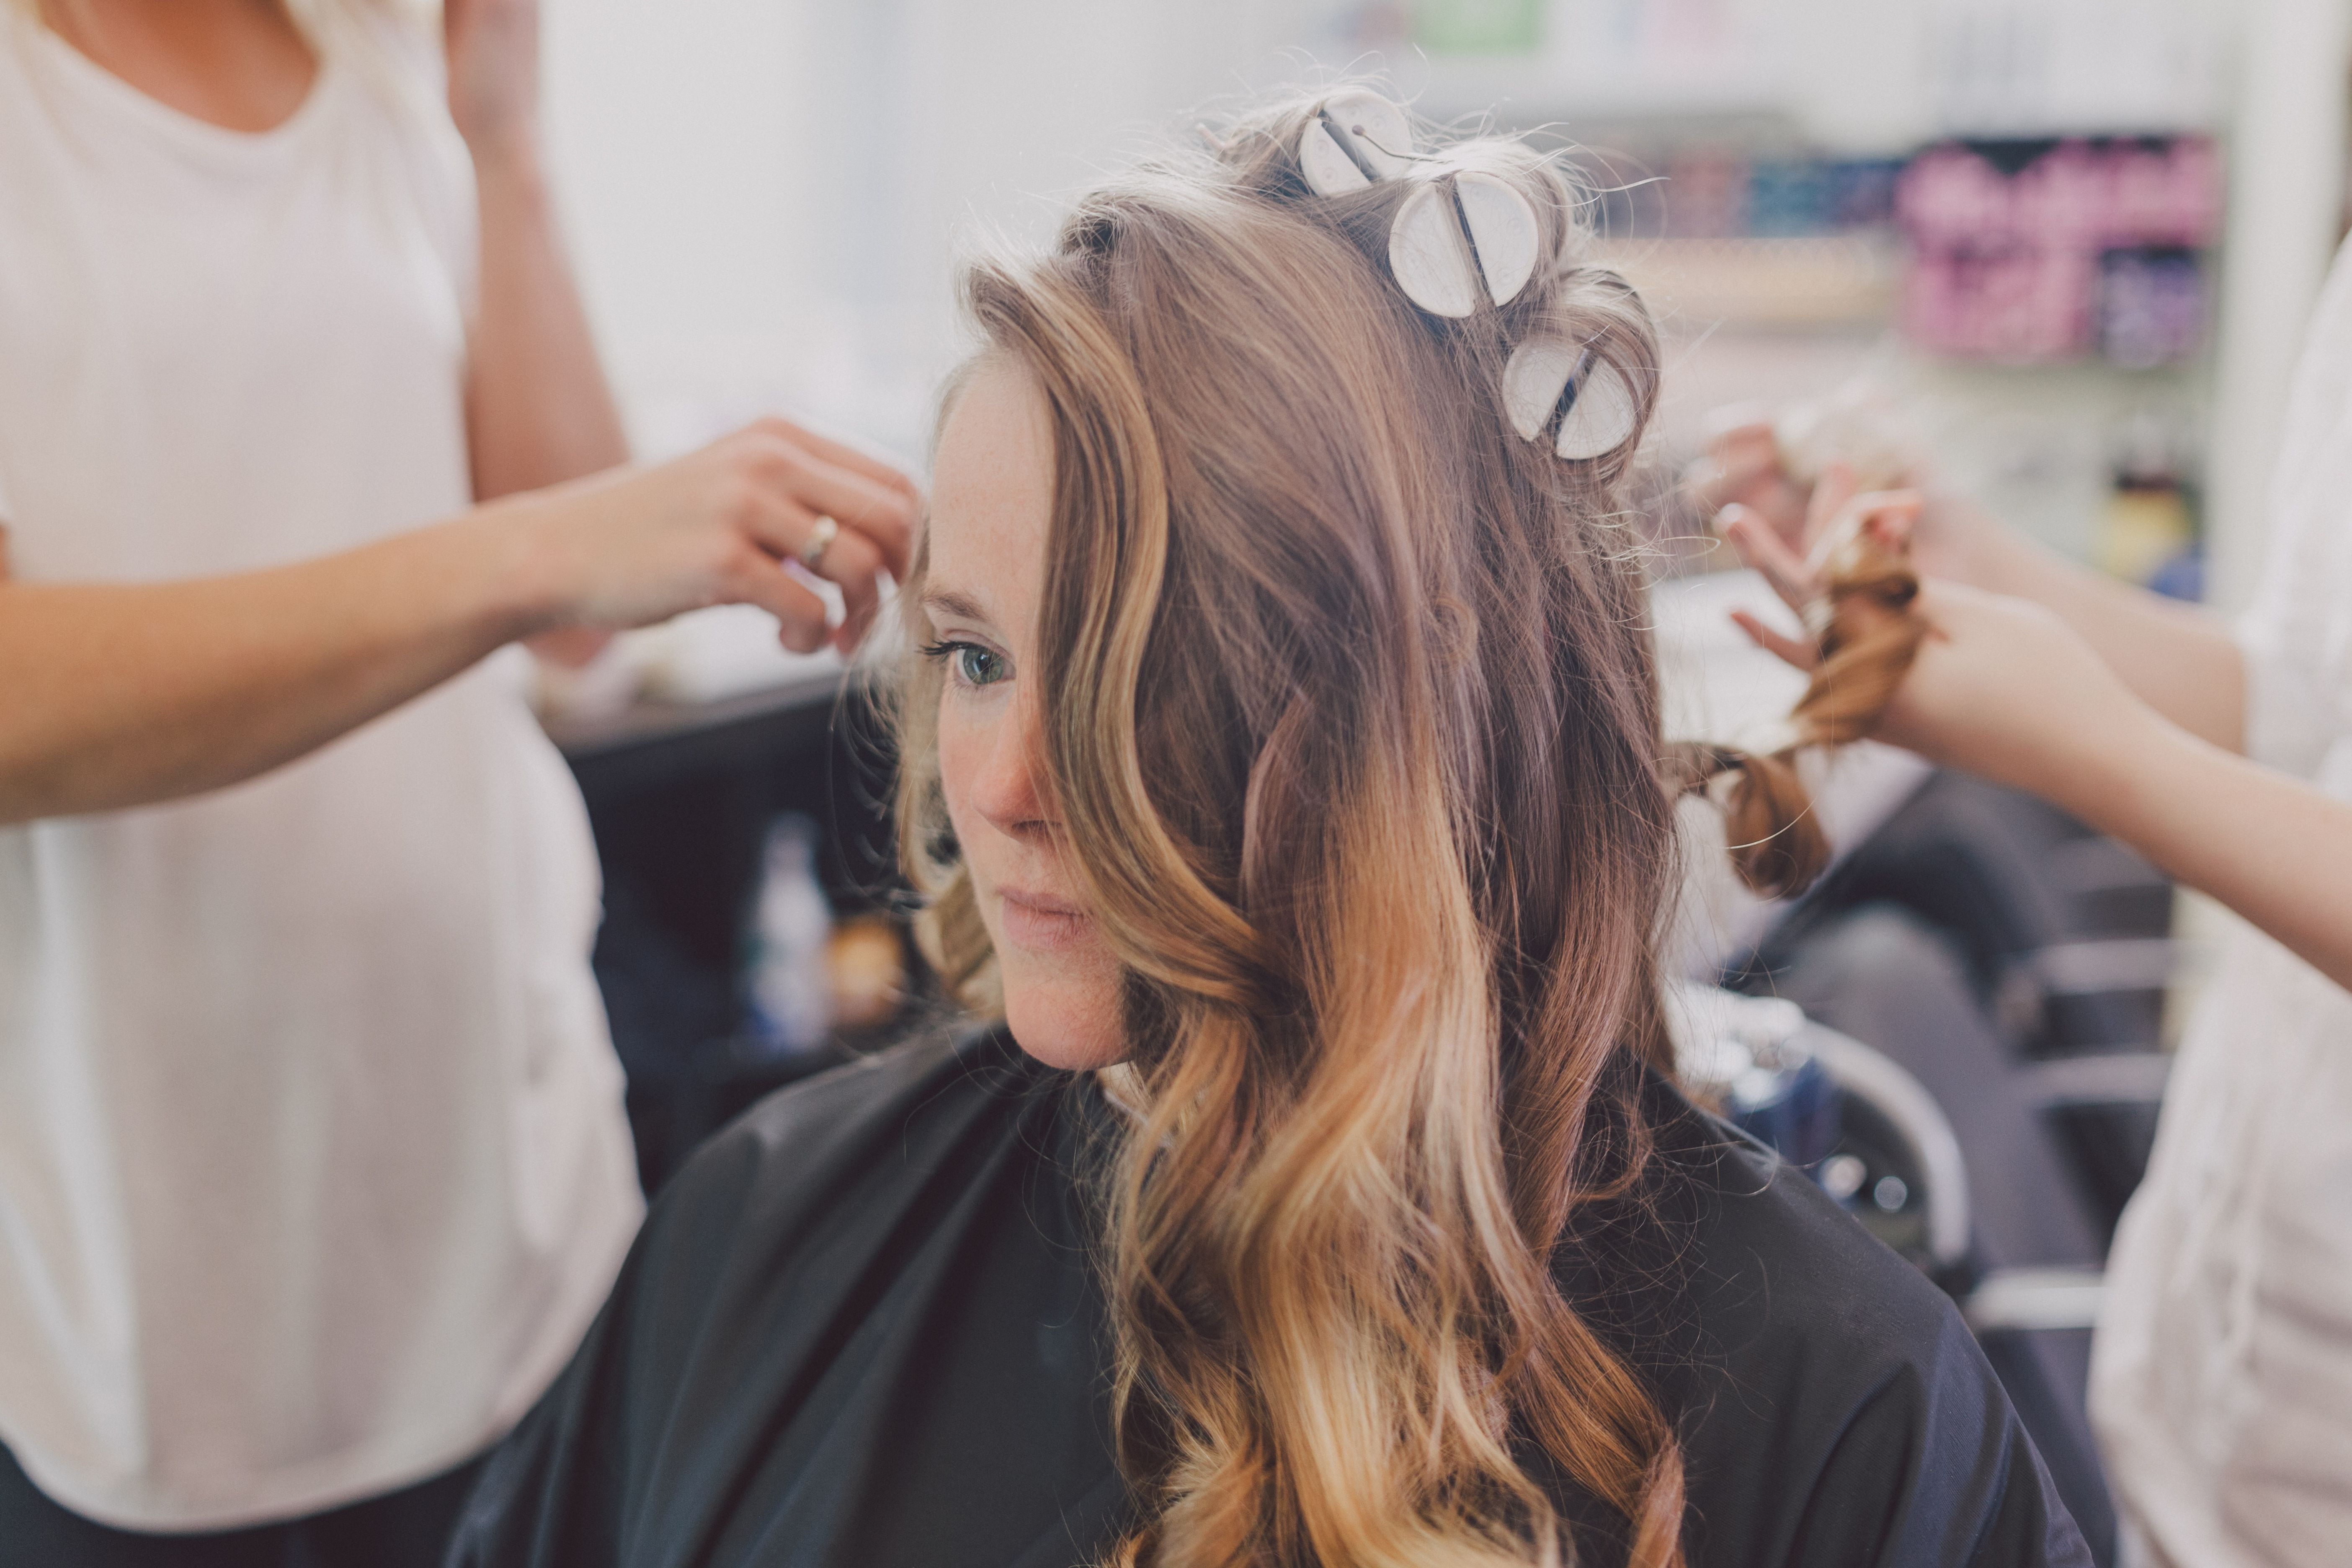 Holiday tipping etiquette to beauty professionals 10 ways to annoy a hairstylist urmus Choice Image